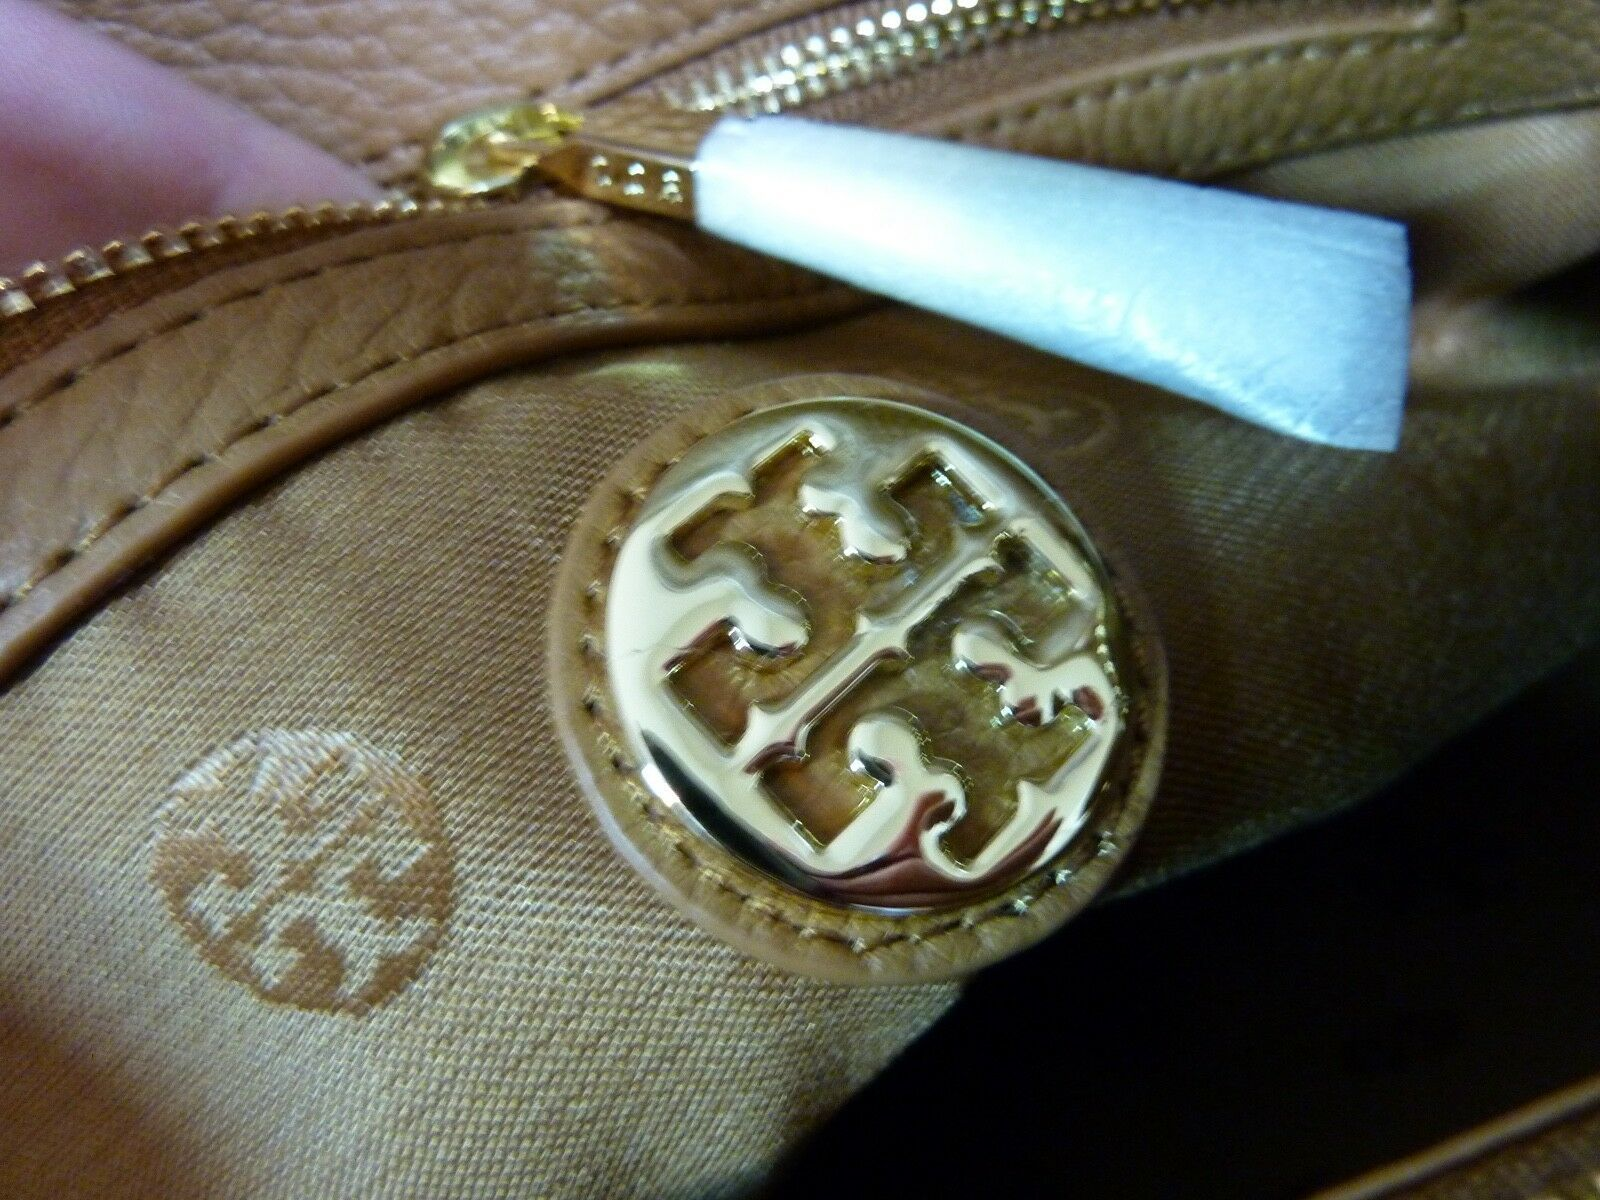 NWT Tory Burch Bark Brown Pebbled Leather Thea Chain Slouchy Tote $495 image 11